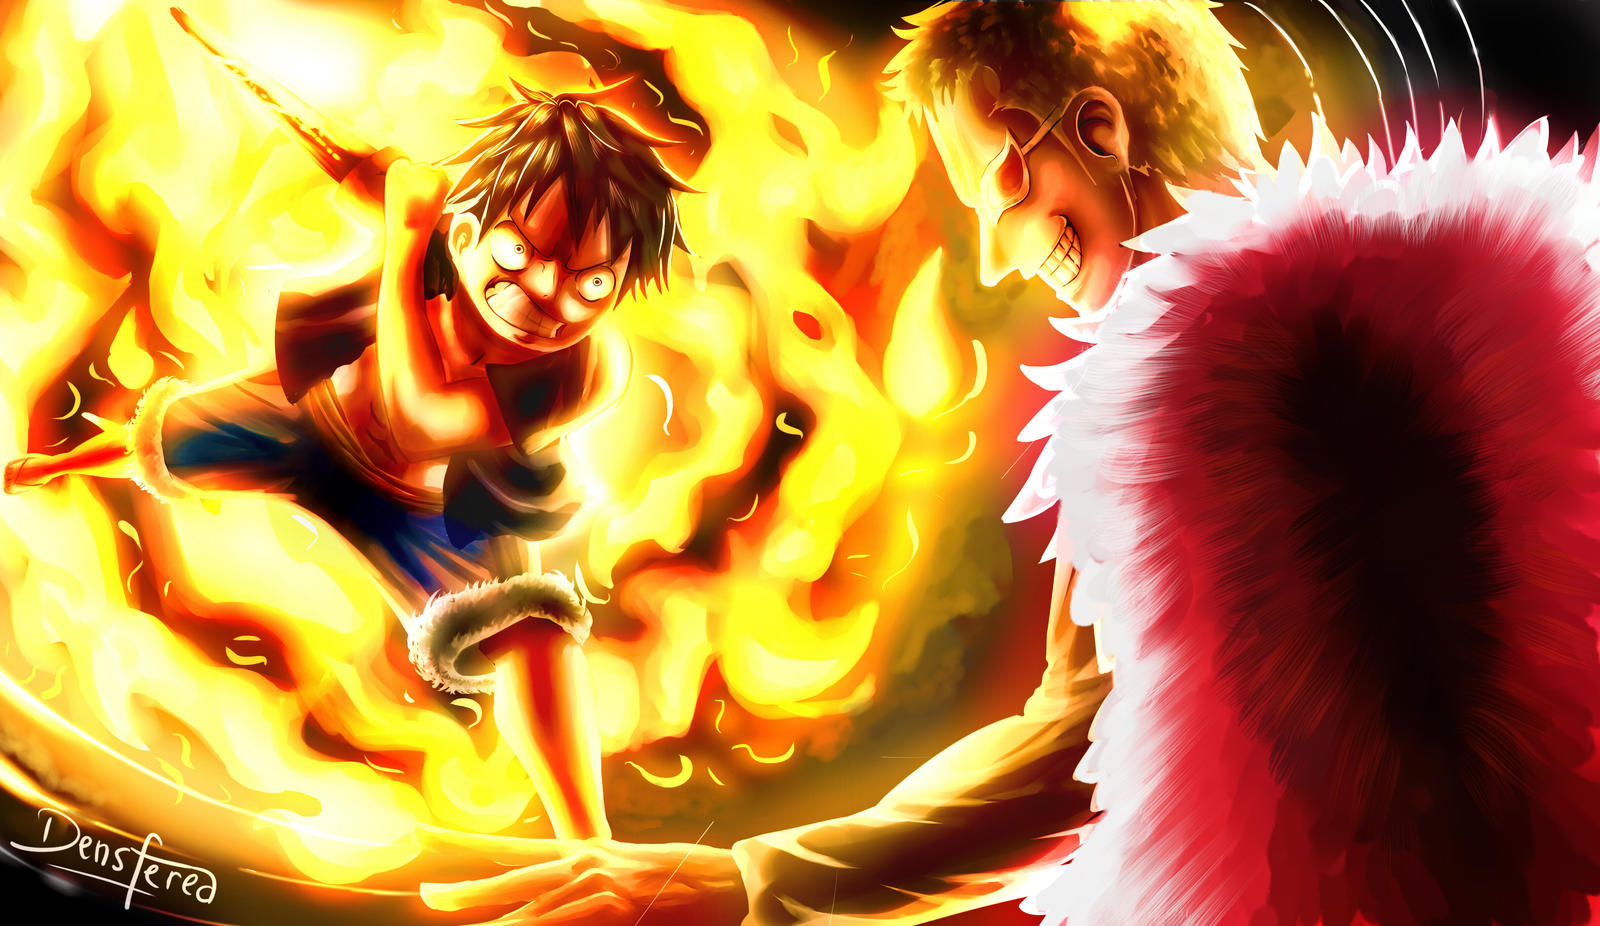 Luffy vs Dofflamingo - Red Hawk by Densferea on DeviantArt